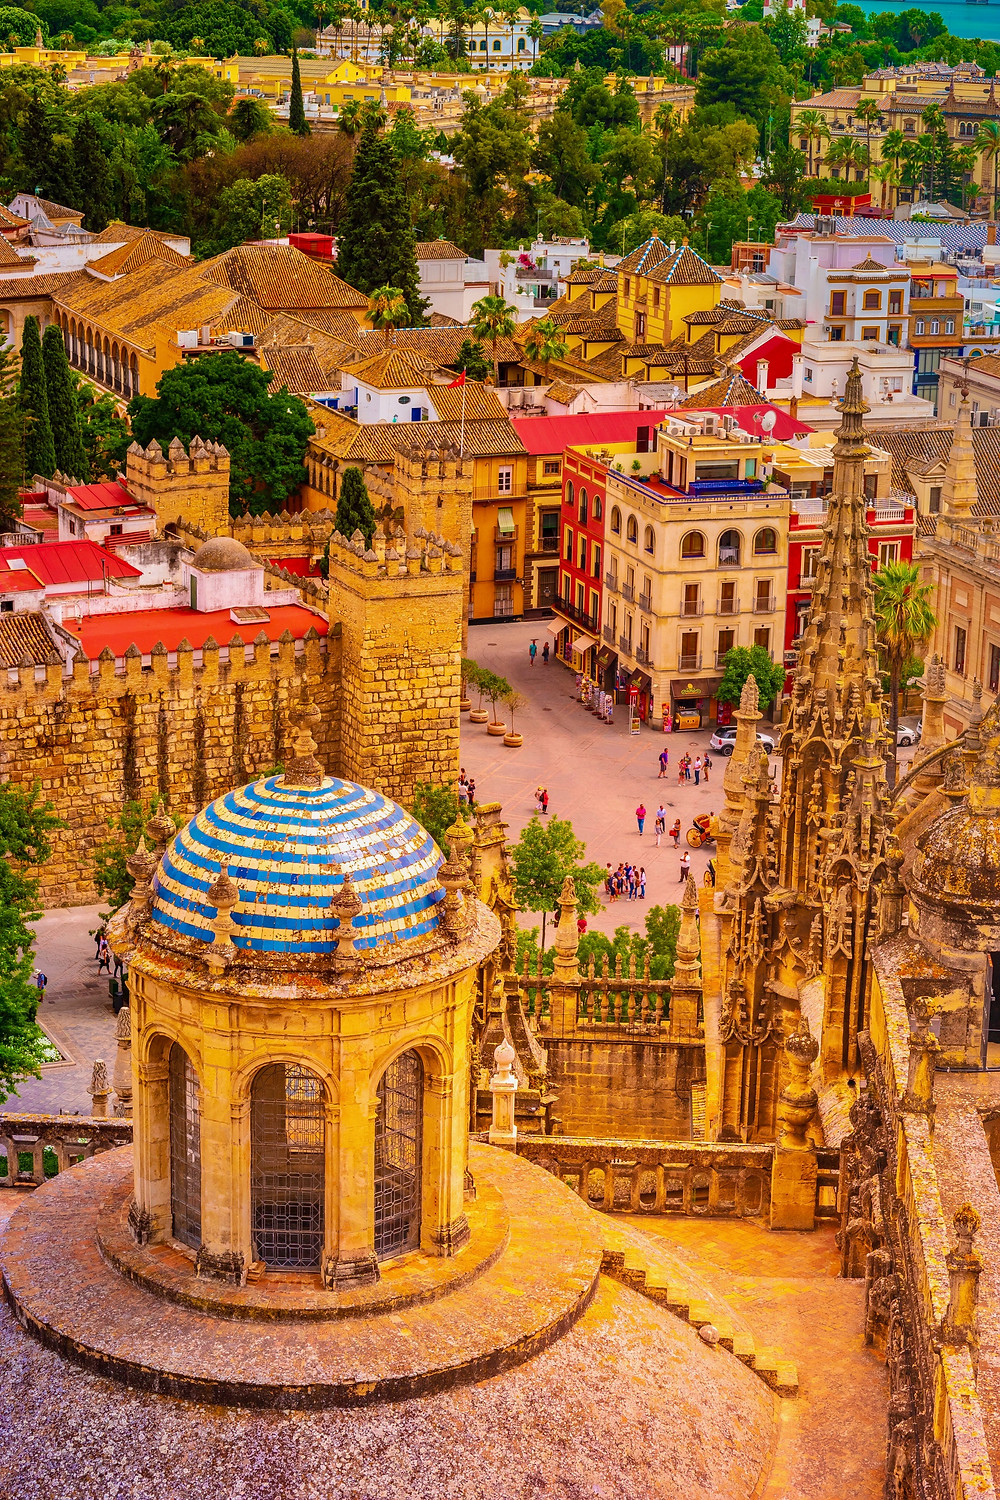 views over Seville from La Giralda Bell Tower